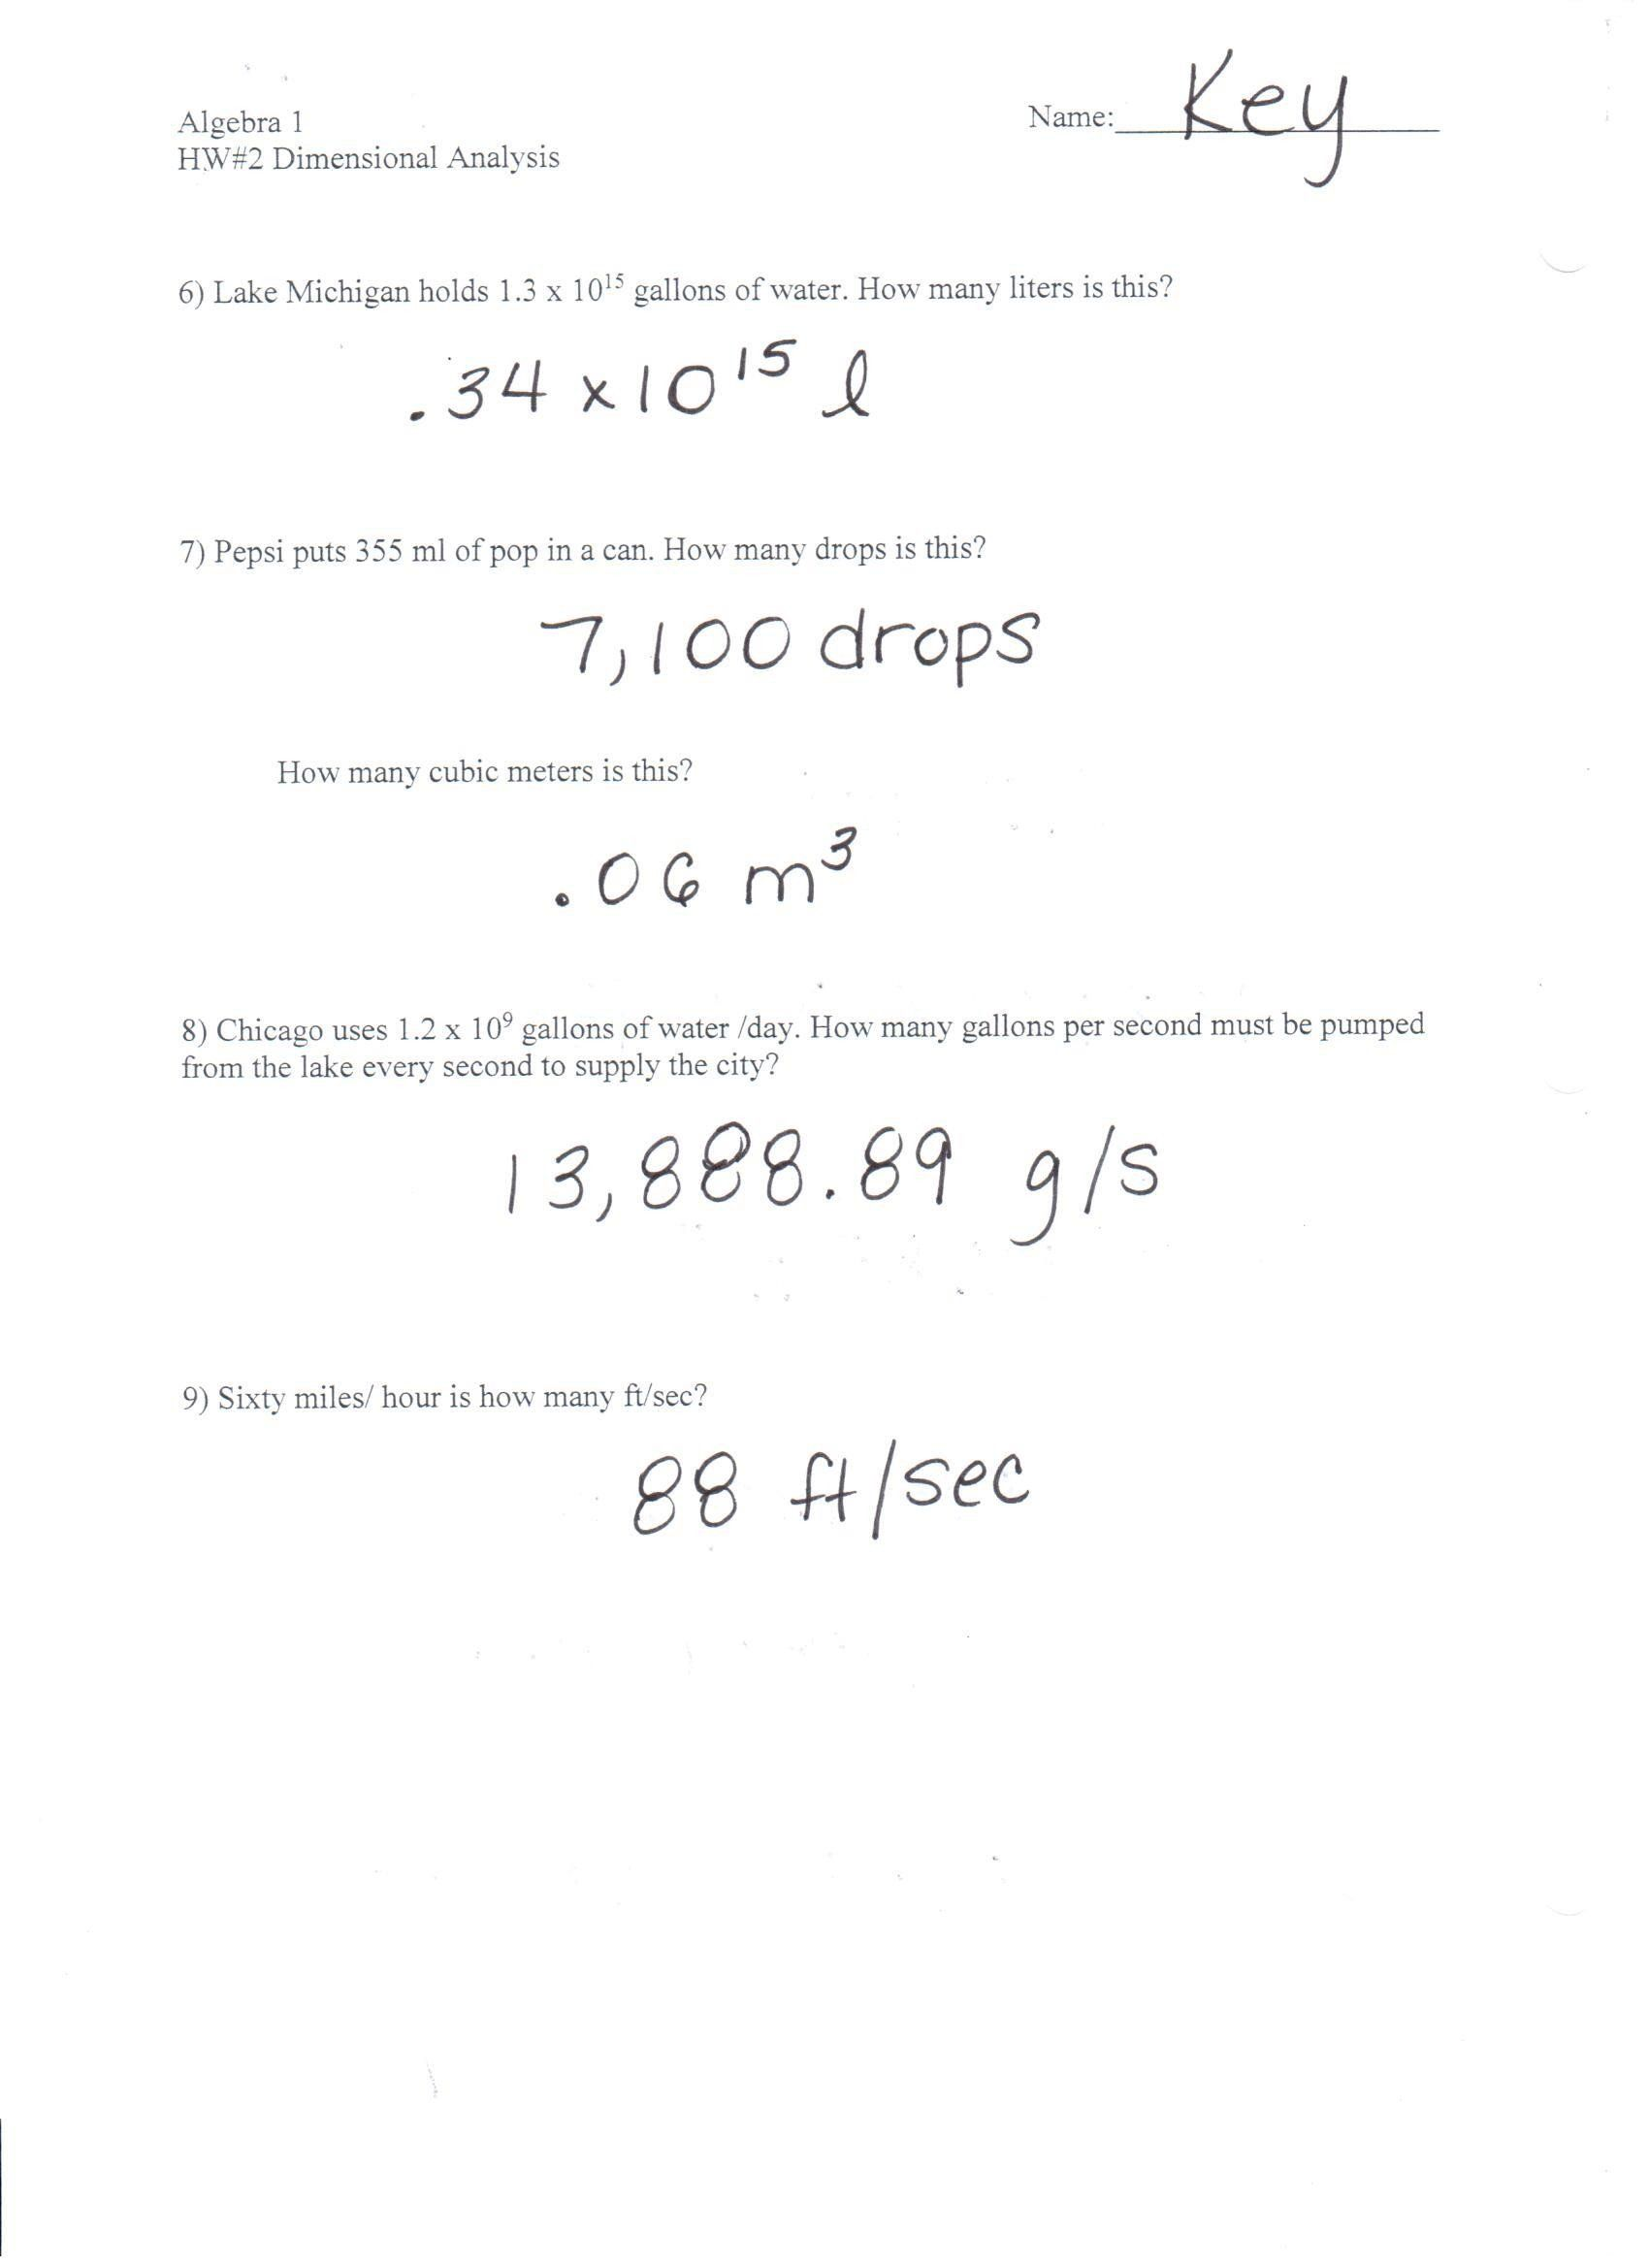 Dimensionalysis Worksheet 1 Answer Key